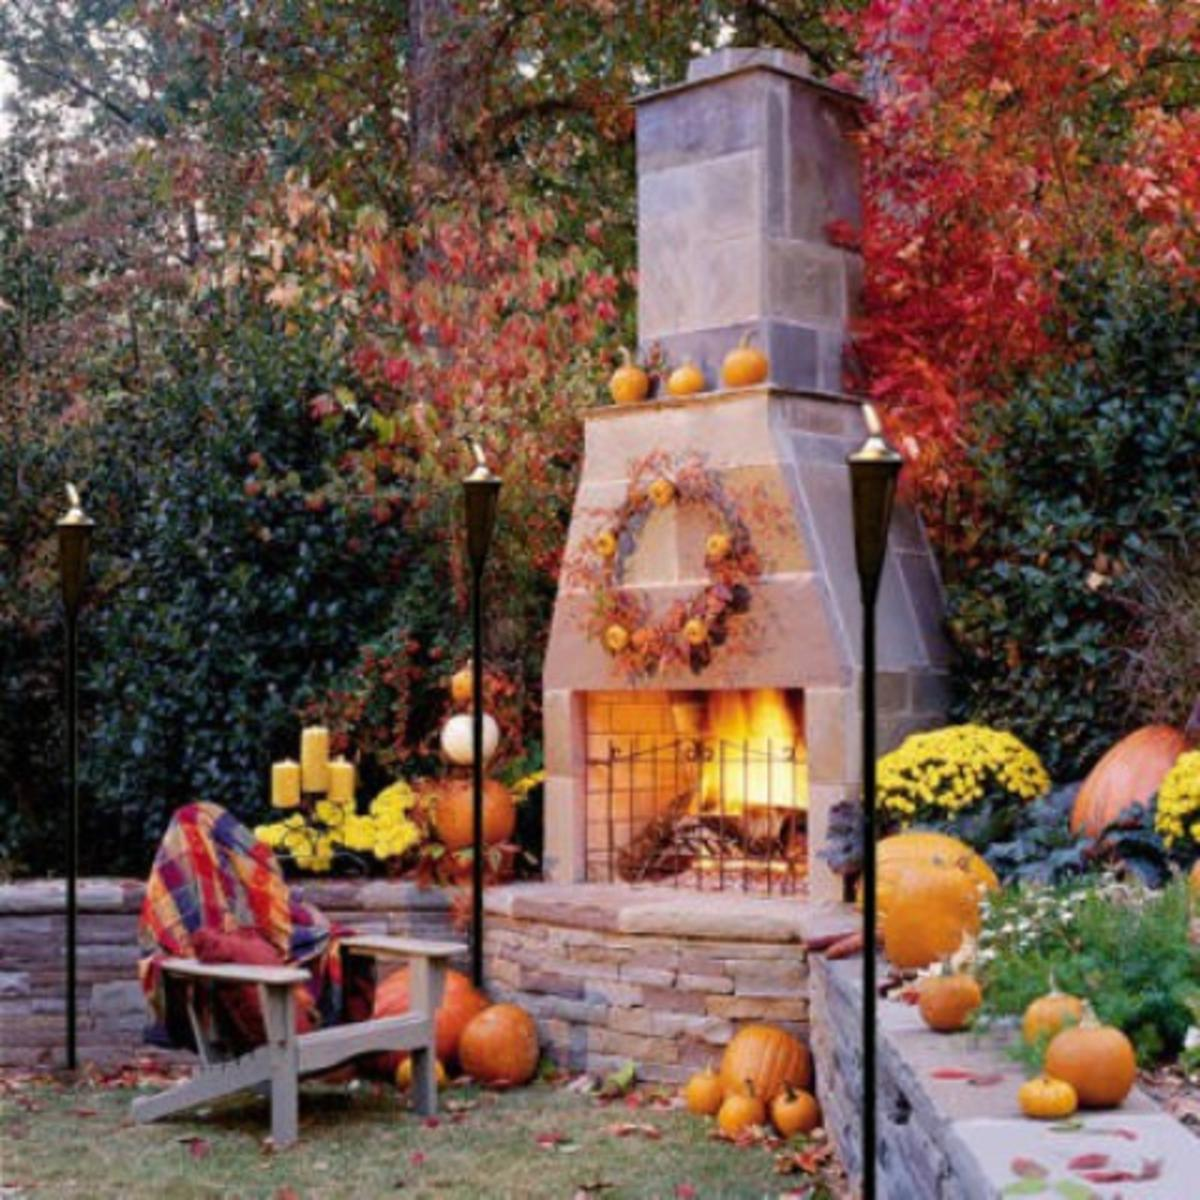 Festive Fall Décor for Indoor Outdoor Living